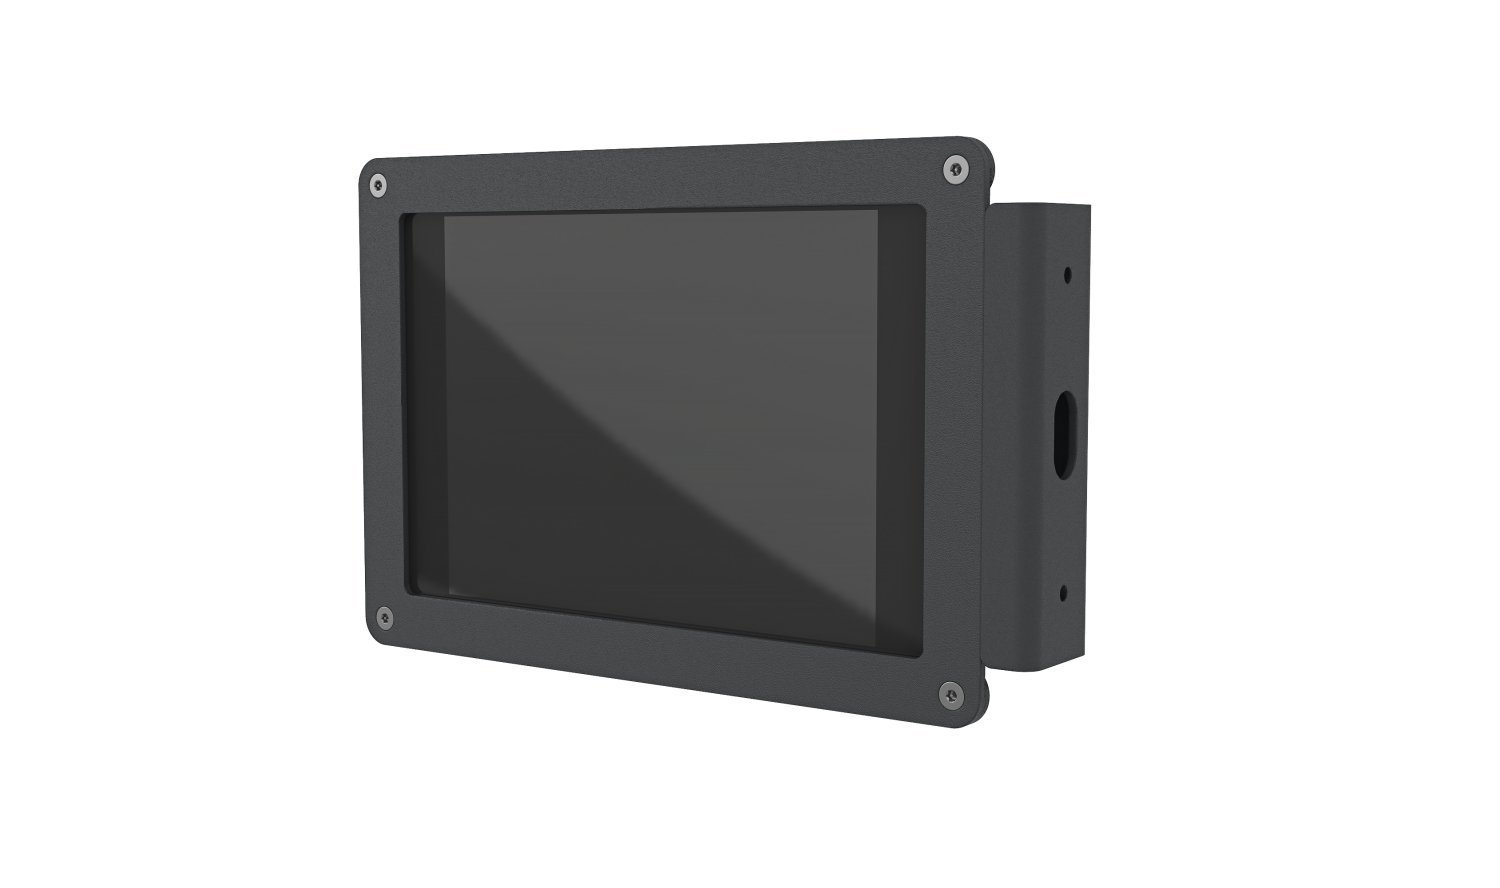 Kensington WindFall Frame for Conference Rooms for iPad mini 4/3/2/1 by Heckler Design (K67949US) by Kensington